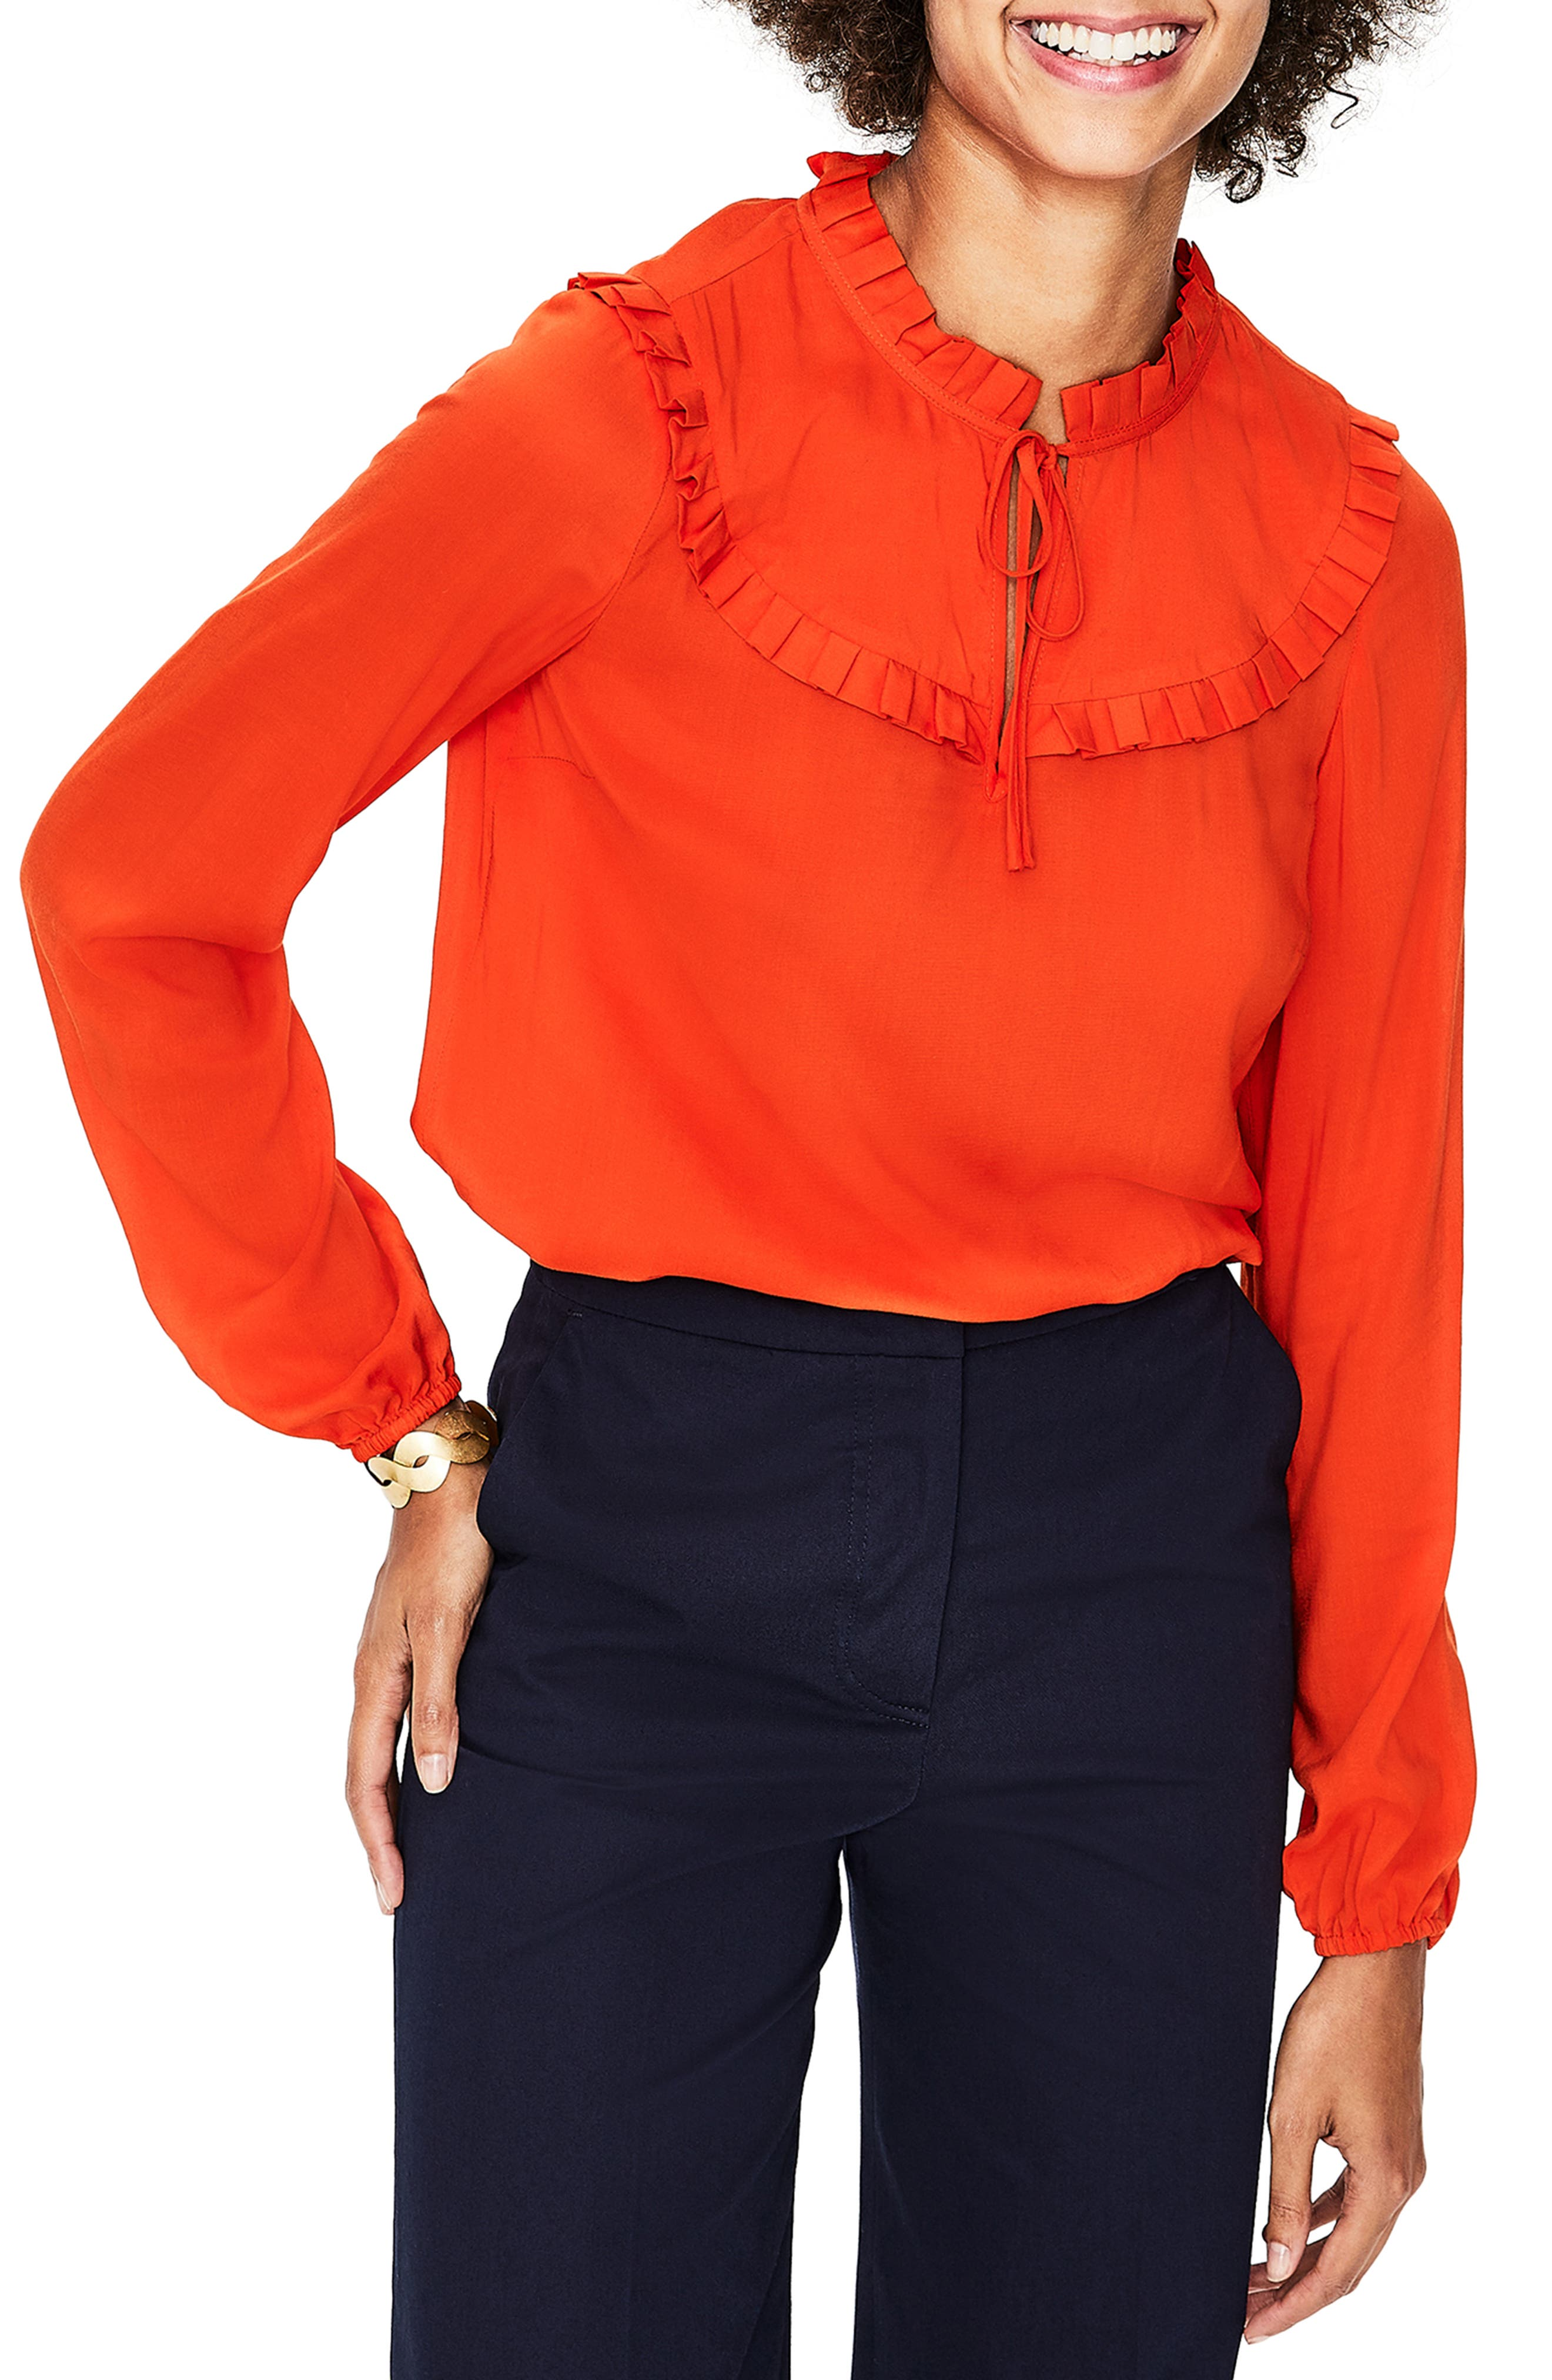 Betsy Ruffle Top,                             Main thumbnail 1, color,                             RED POP